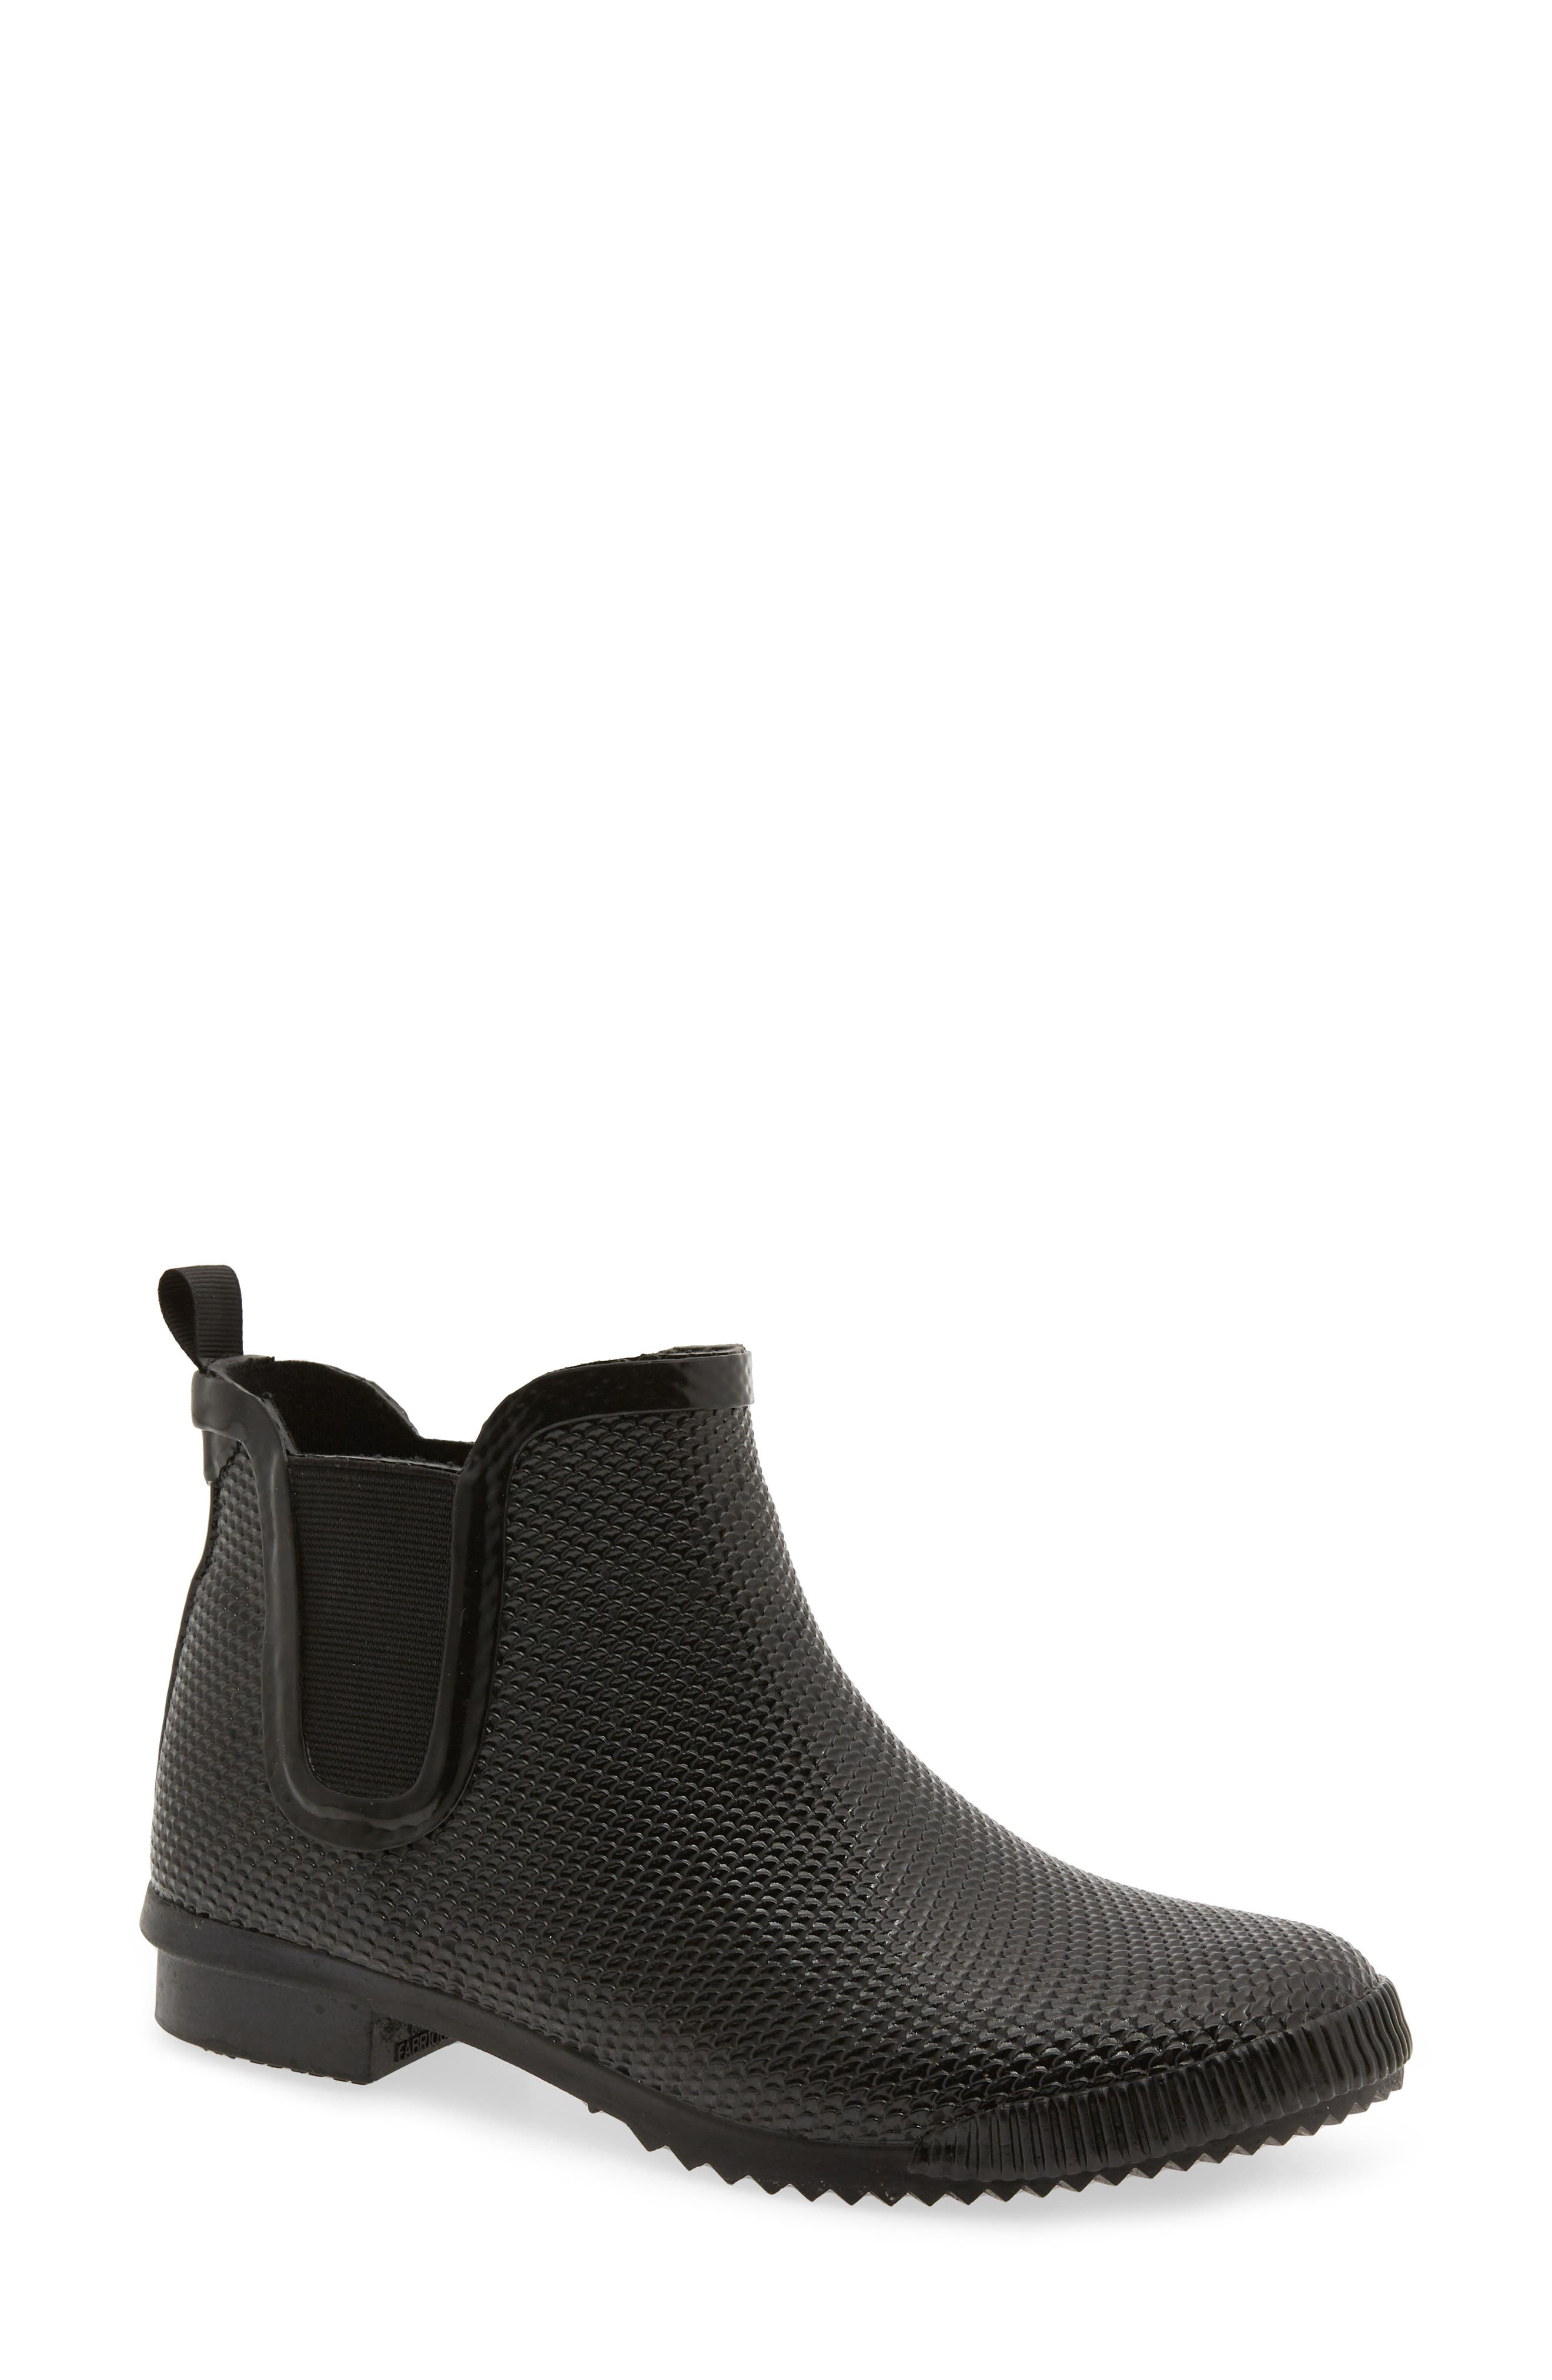 Regent Chelsea Rain Boot,                         Main,                         color, BLACK SNAKE PRINT